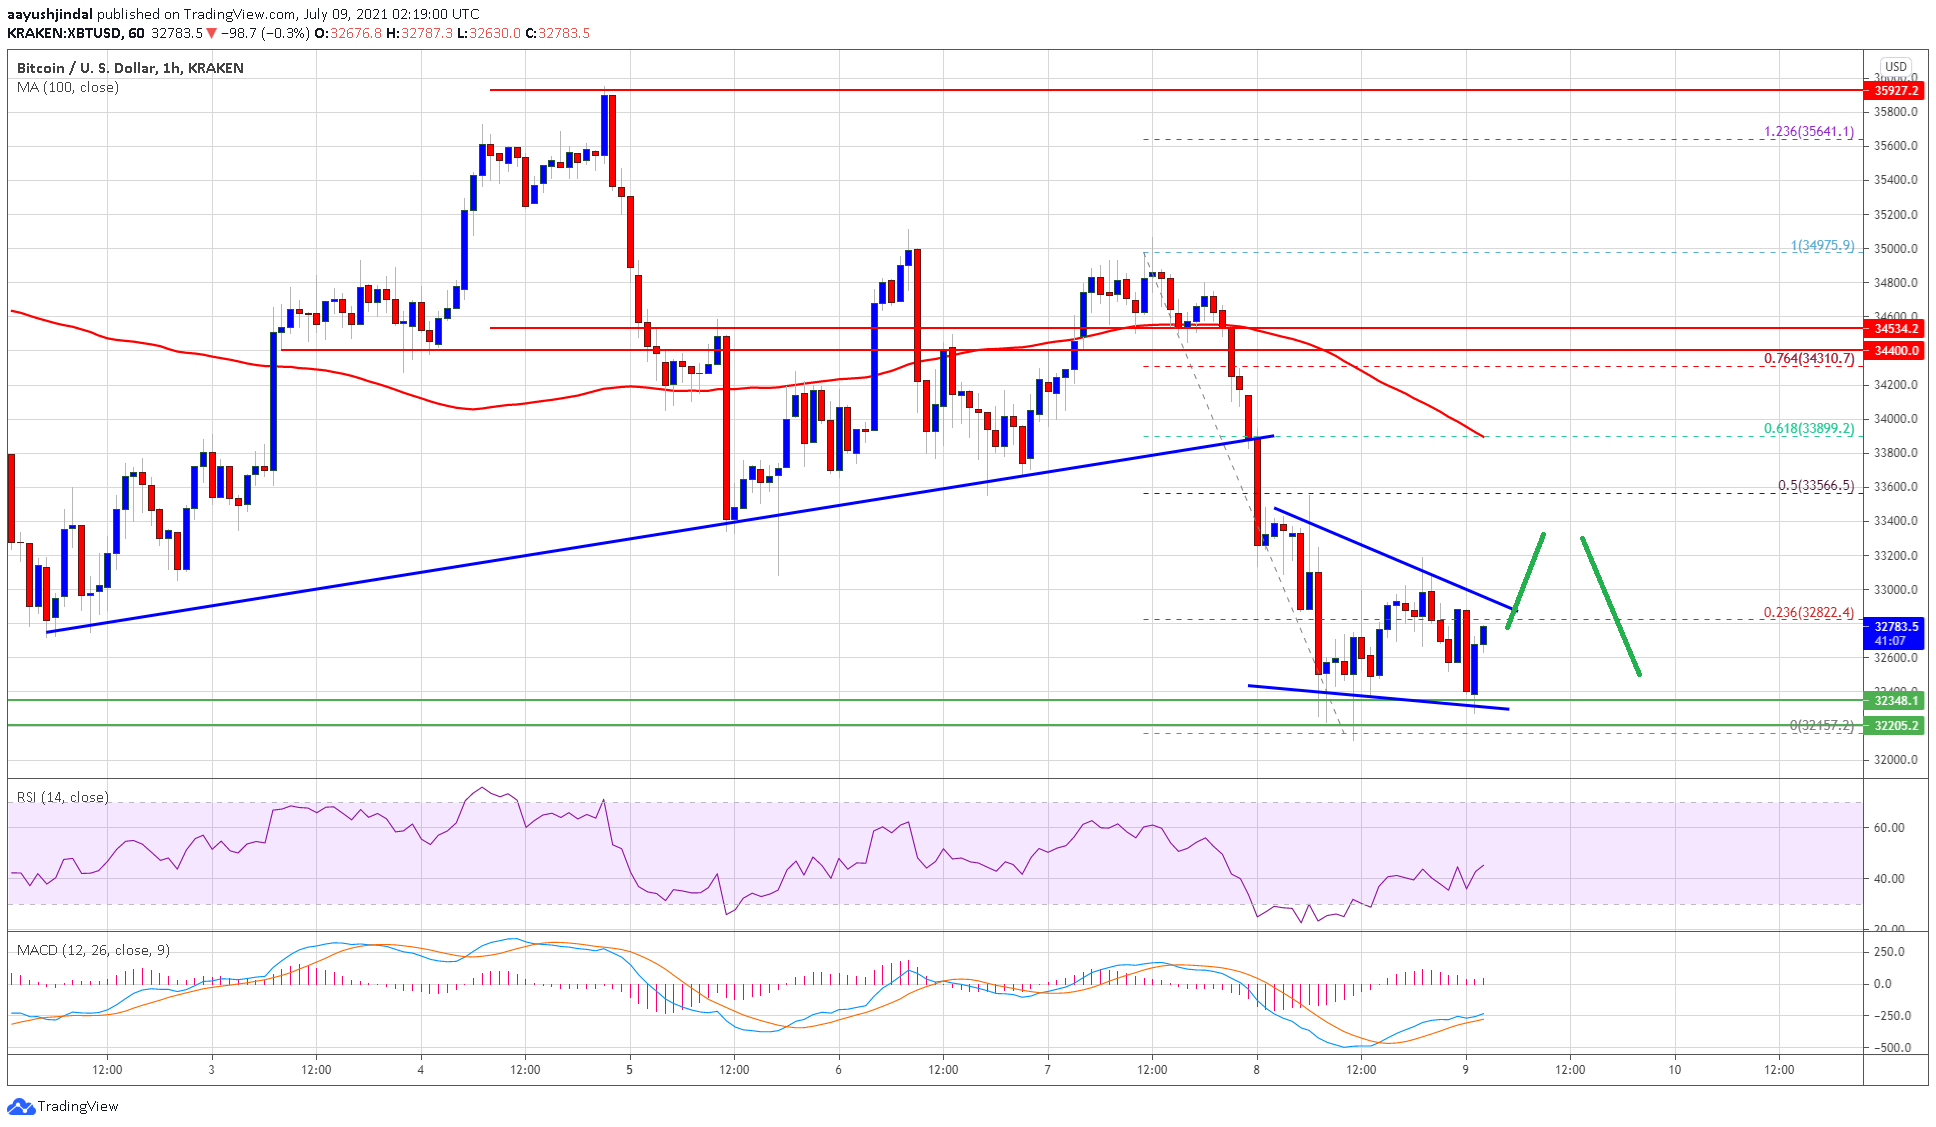 TA: Bitcoin Reaches Key Juncture, Why BTC Could Struggle To Recover